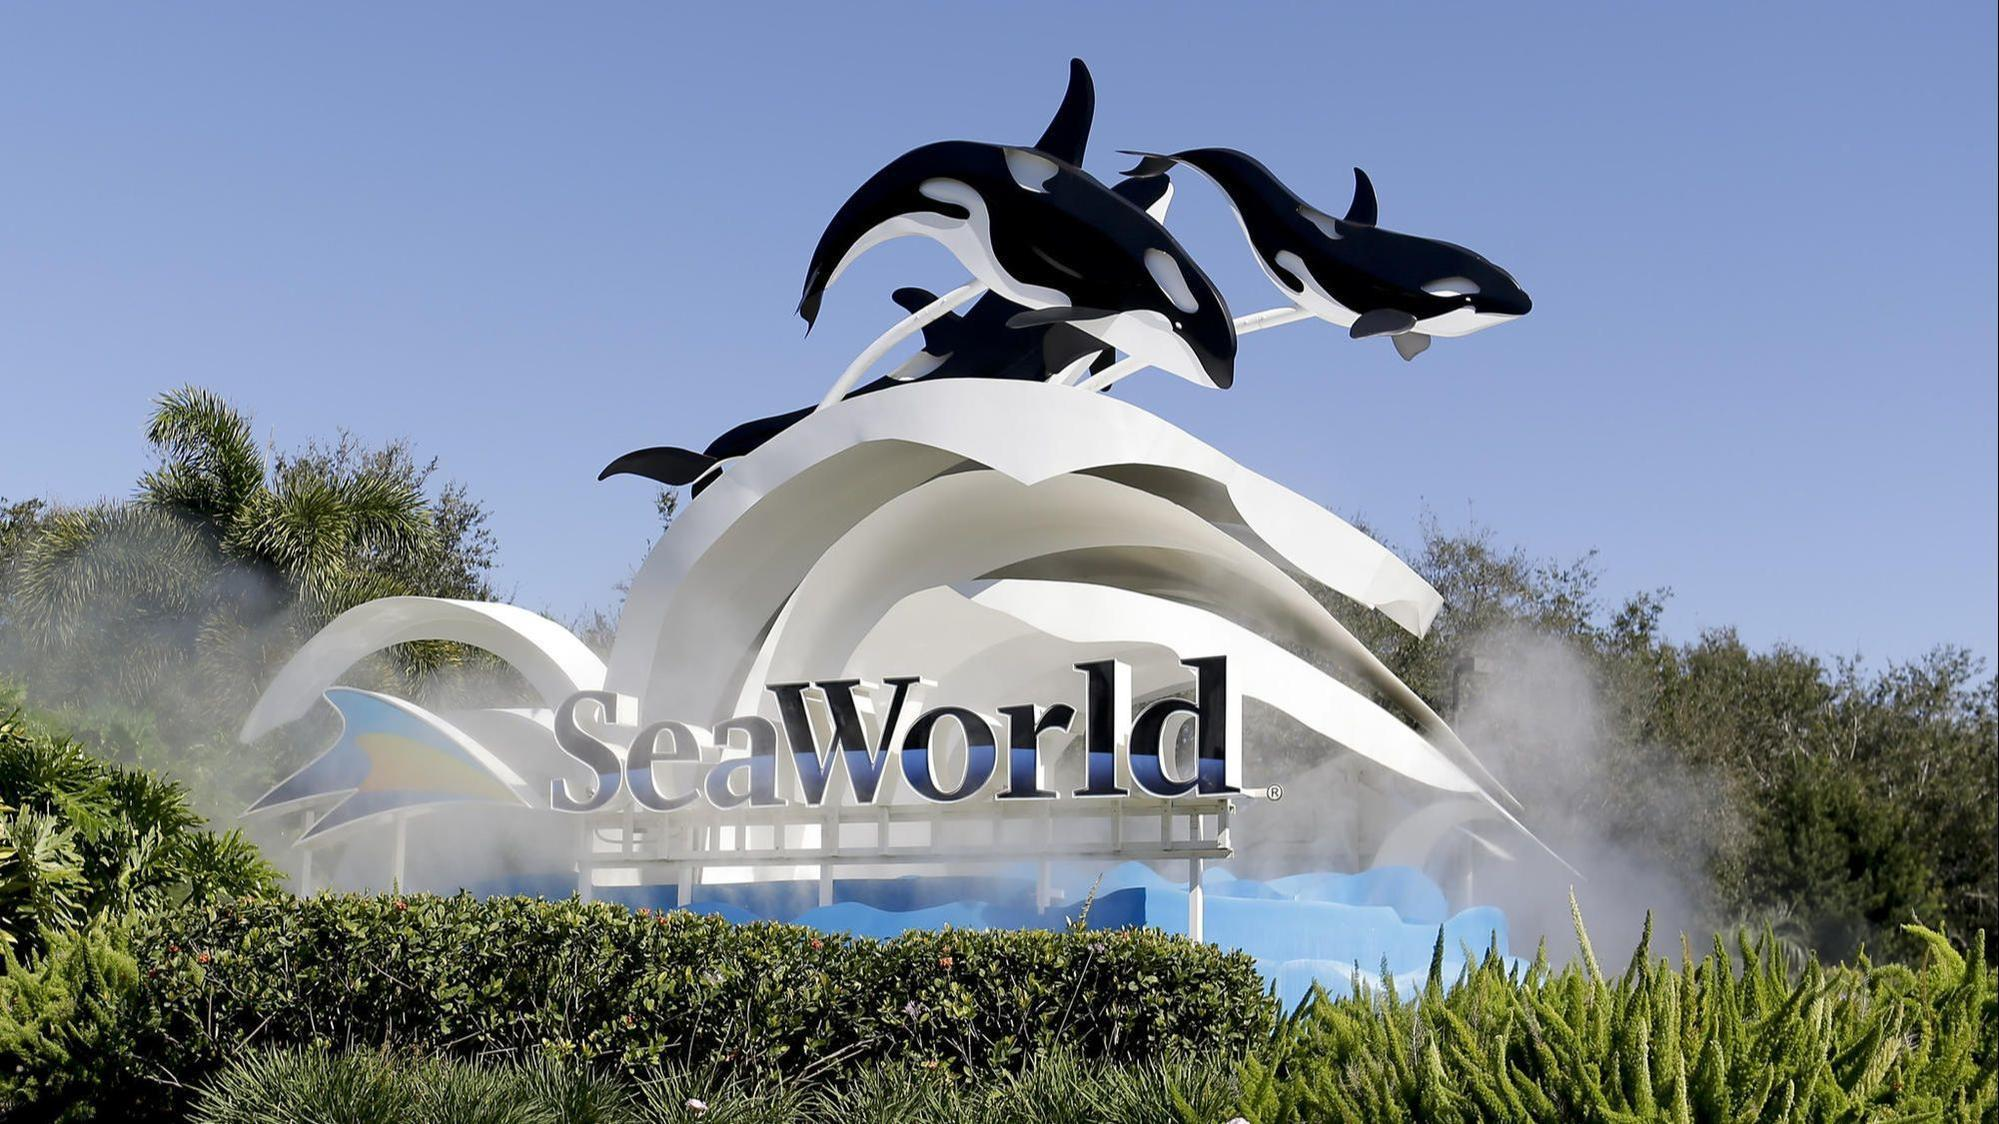 SeaWorld gives July reductions on tickets, Christmas experiences